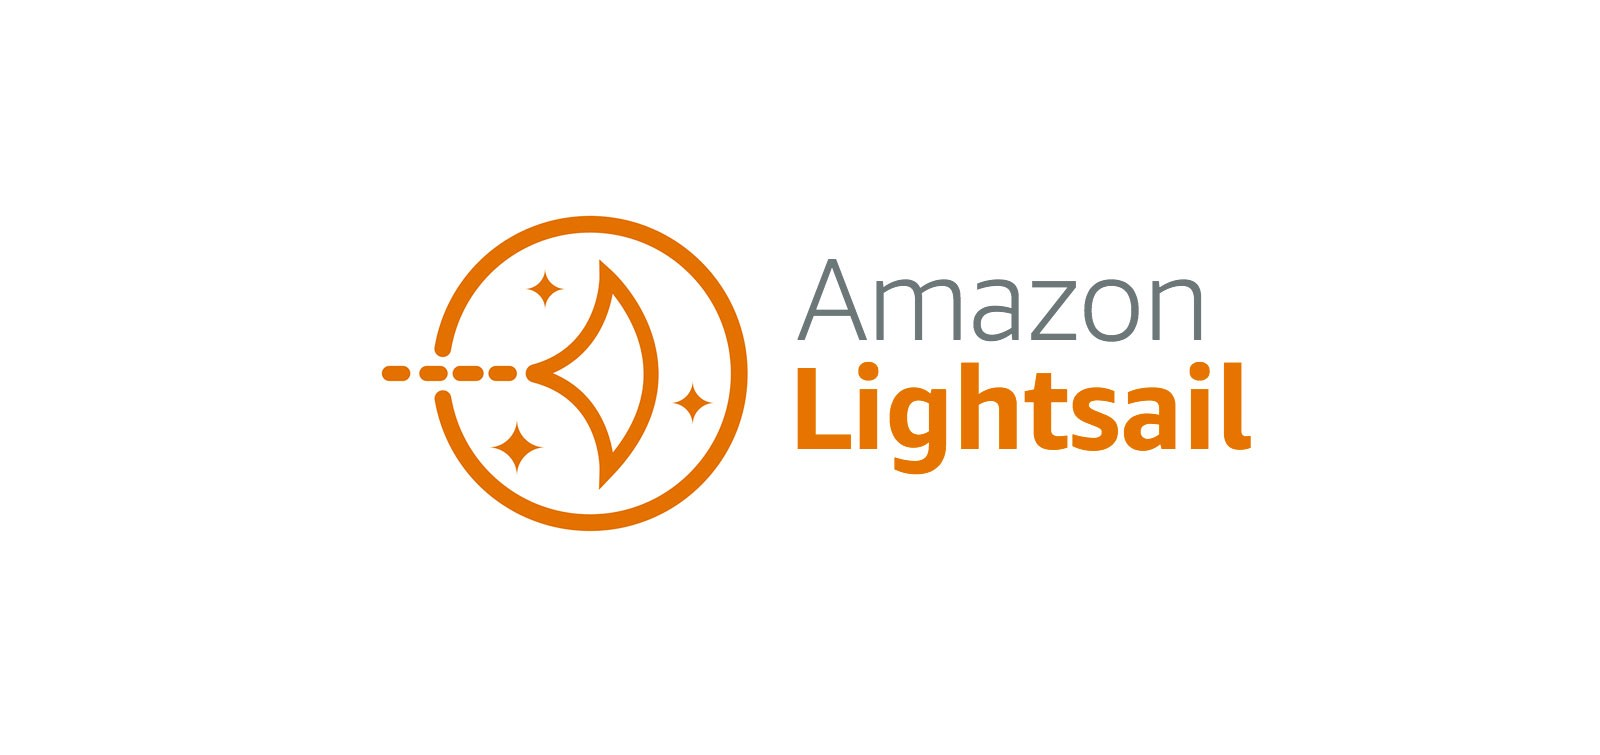 /what-is-amazon-lightsail-beaef47dd64e feature image